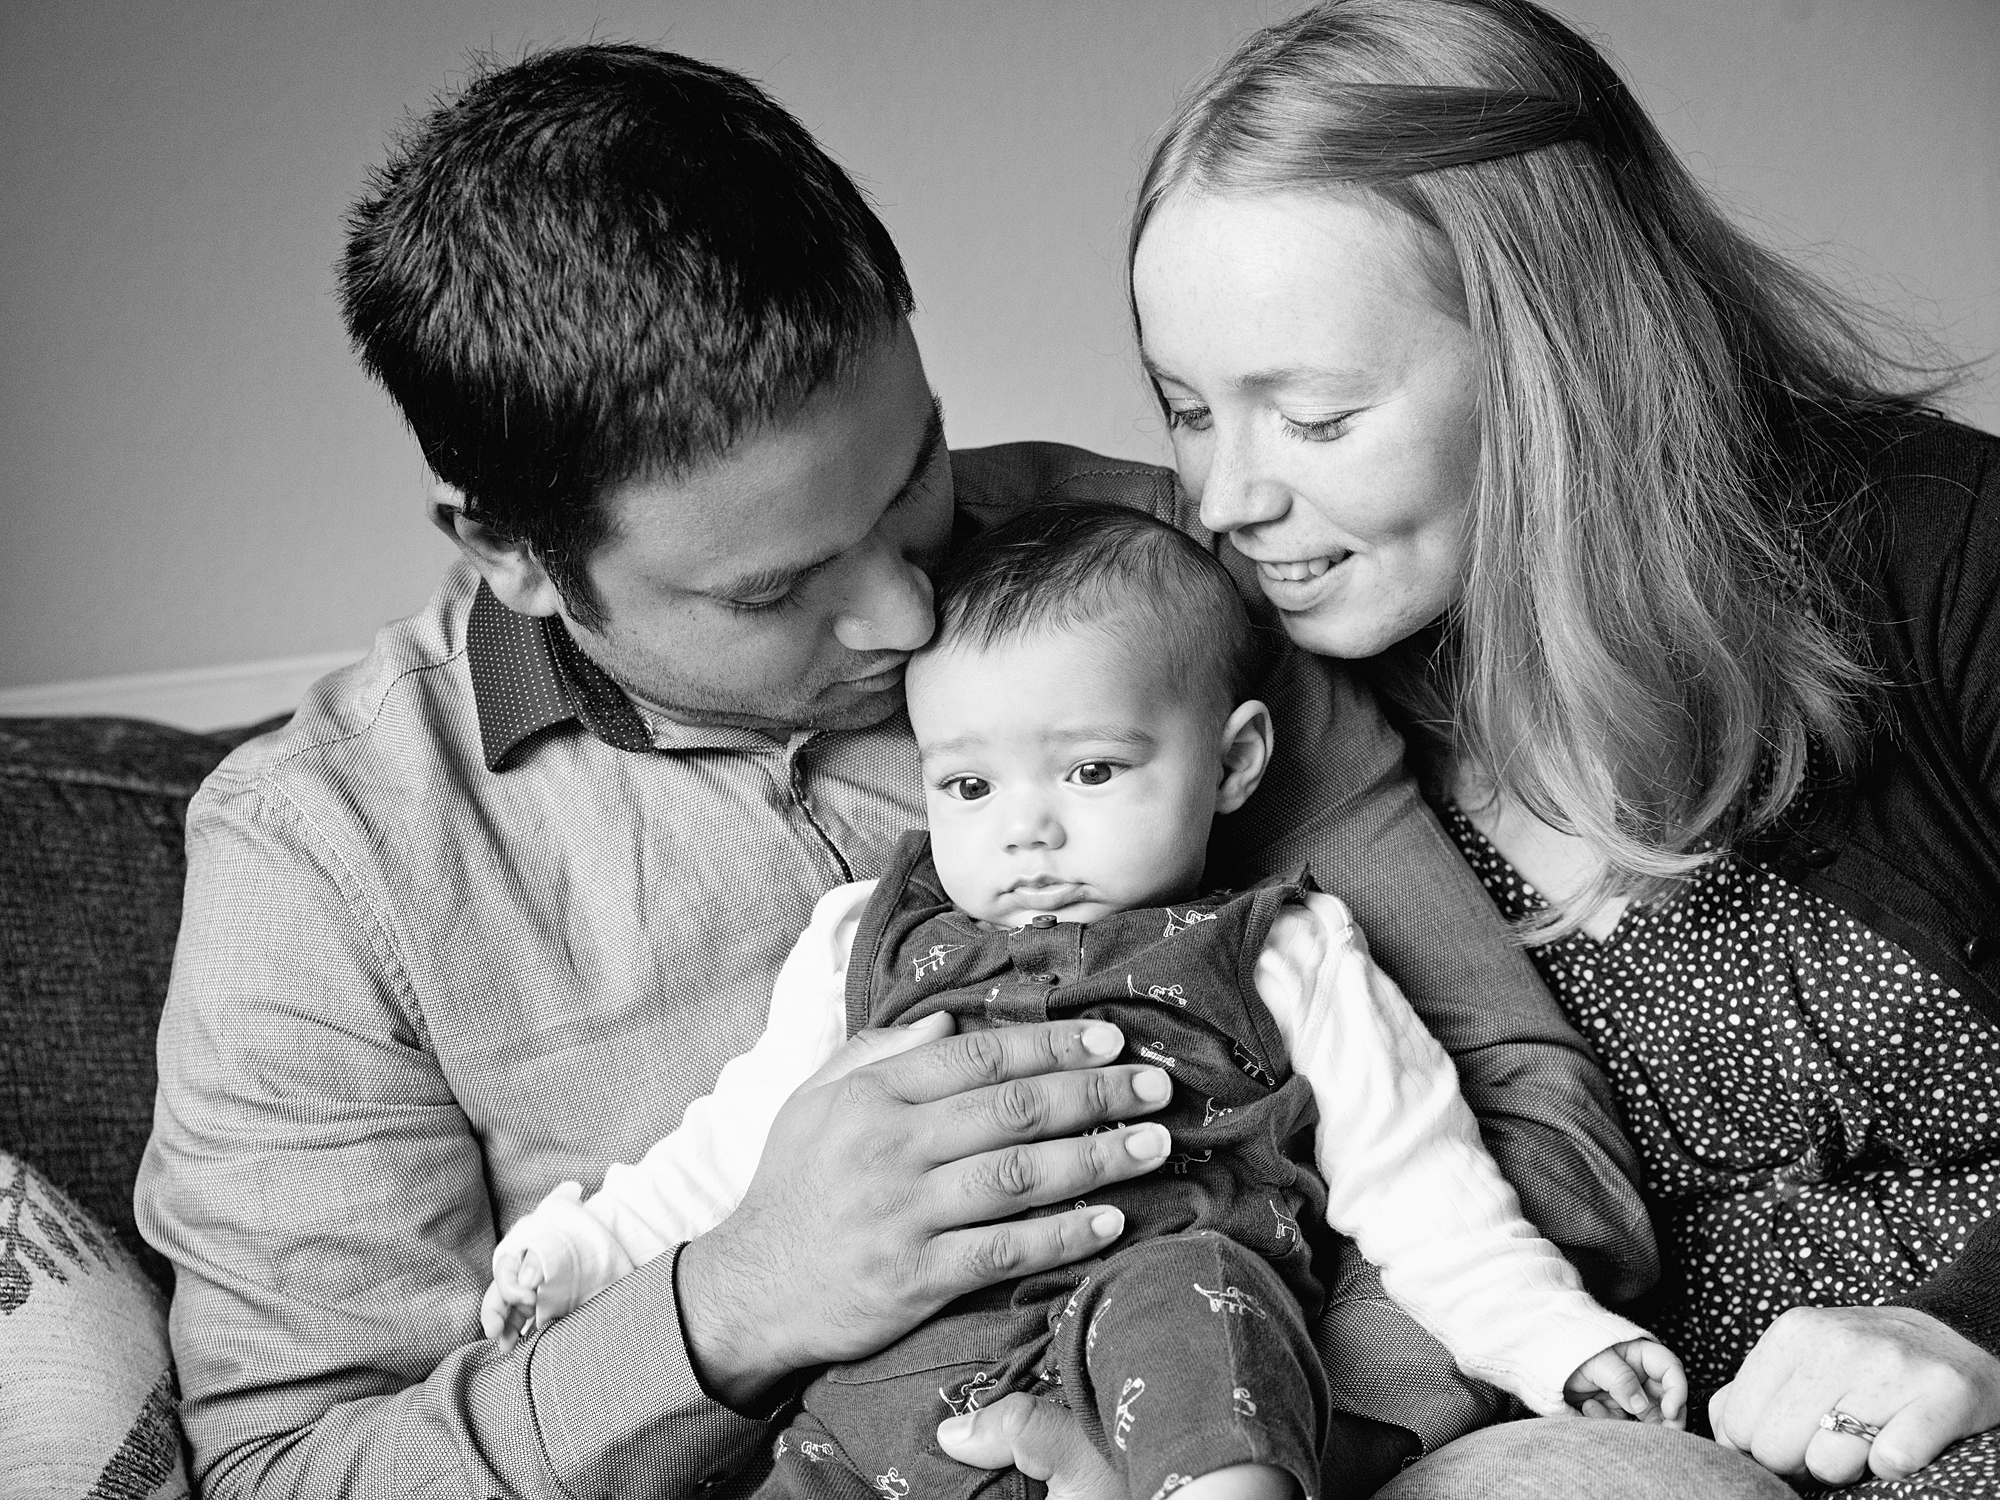 dad and mum snuggling with baby at home lifestyle family photography in edinburgh midlothian